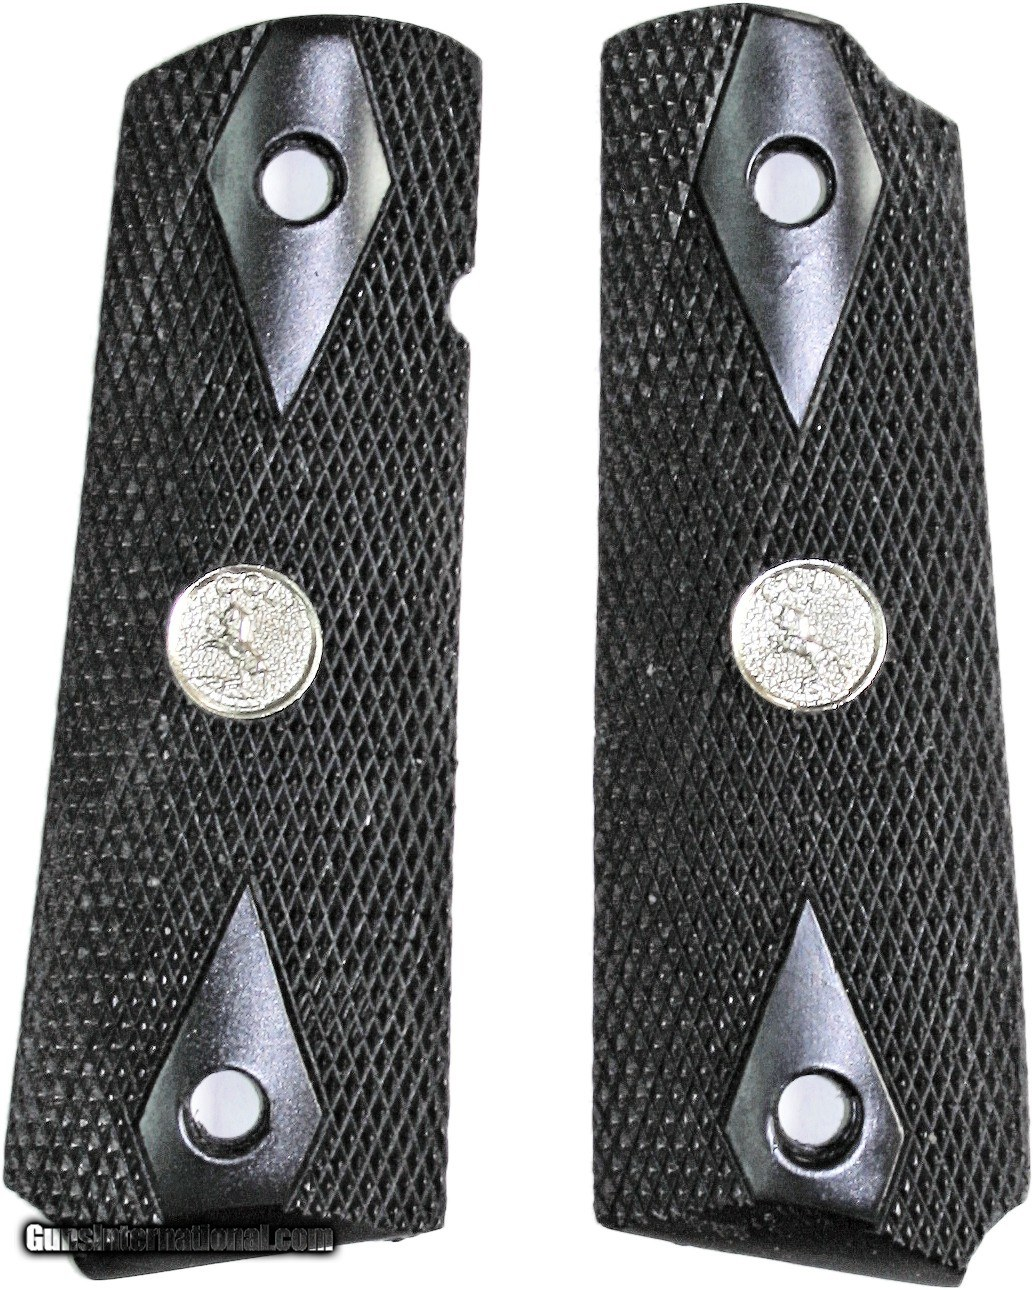 Colt 1911 Grips, Black, Checkered With Medallions for sale